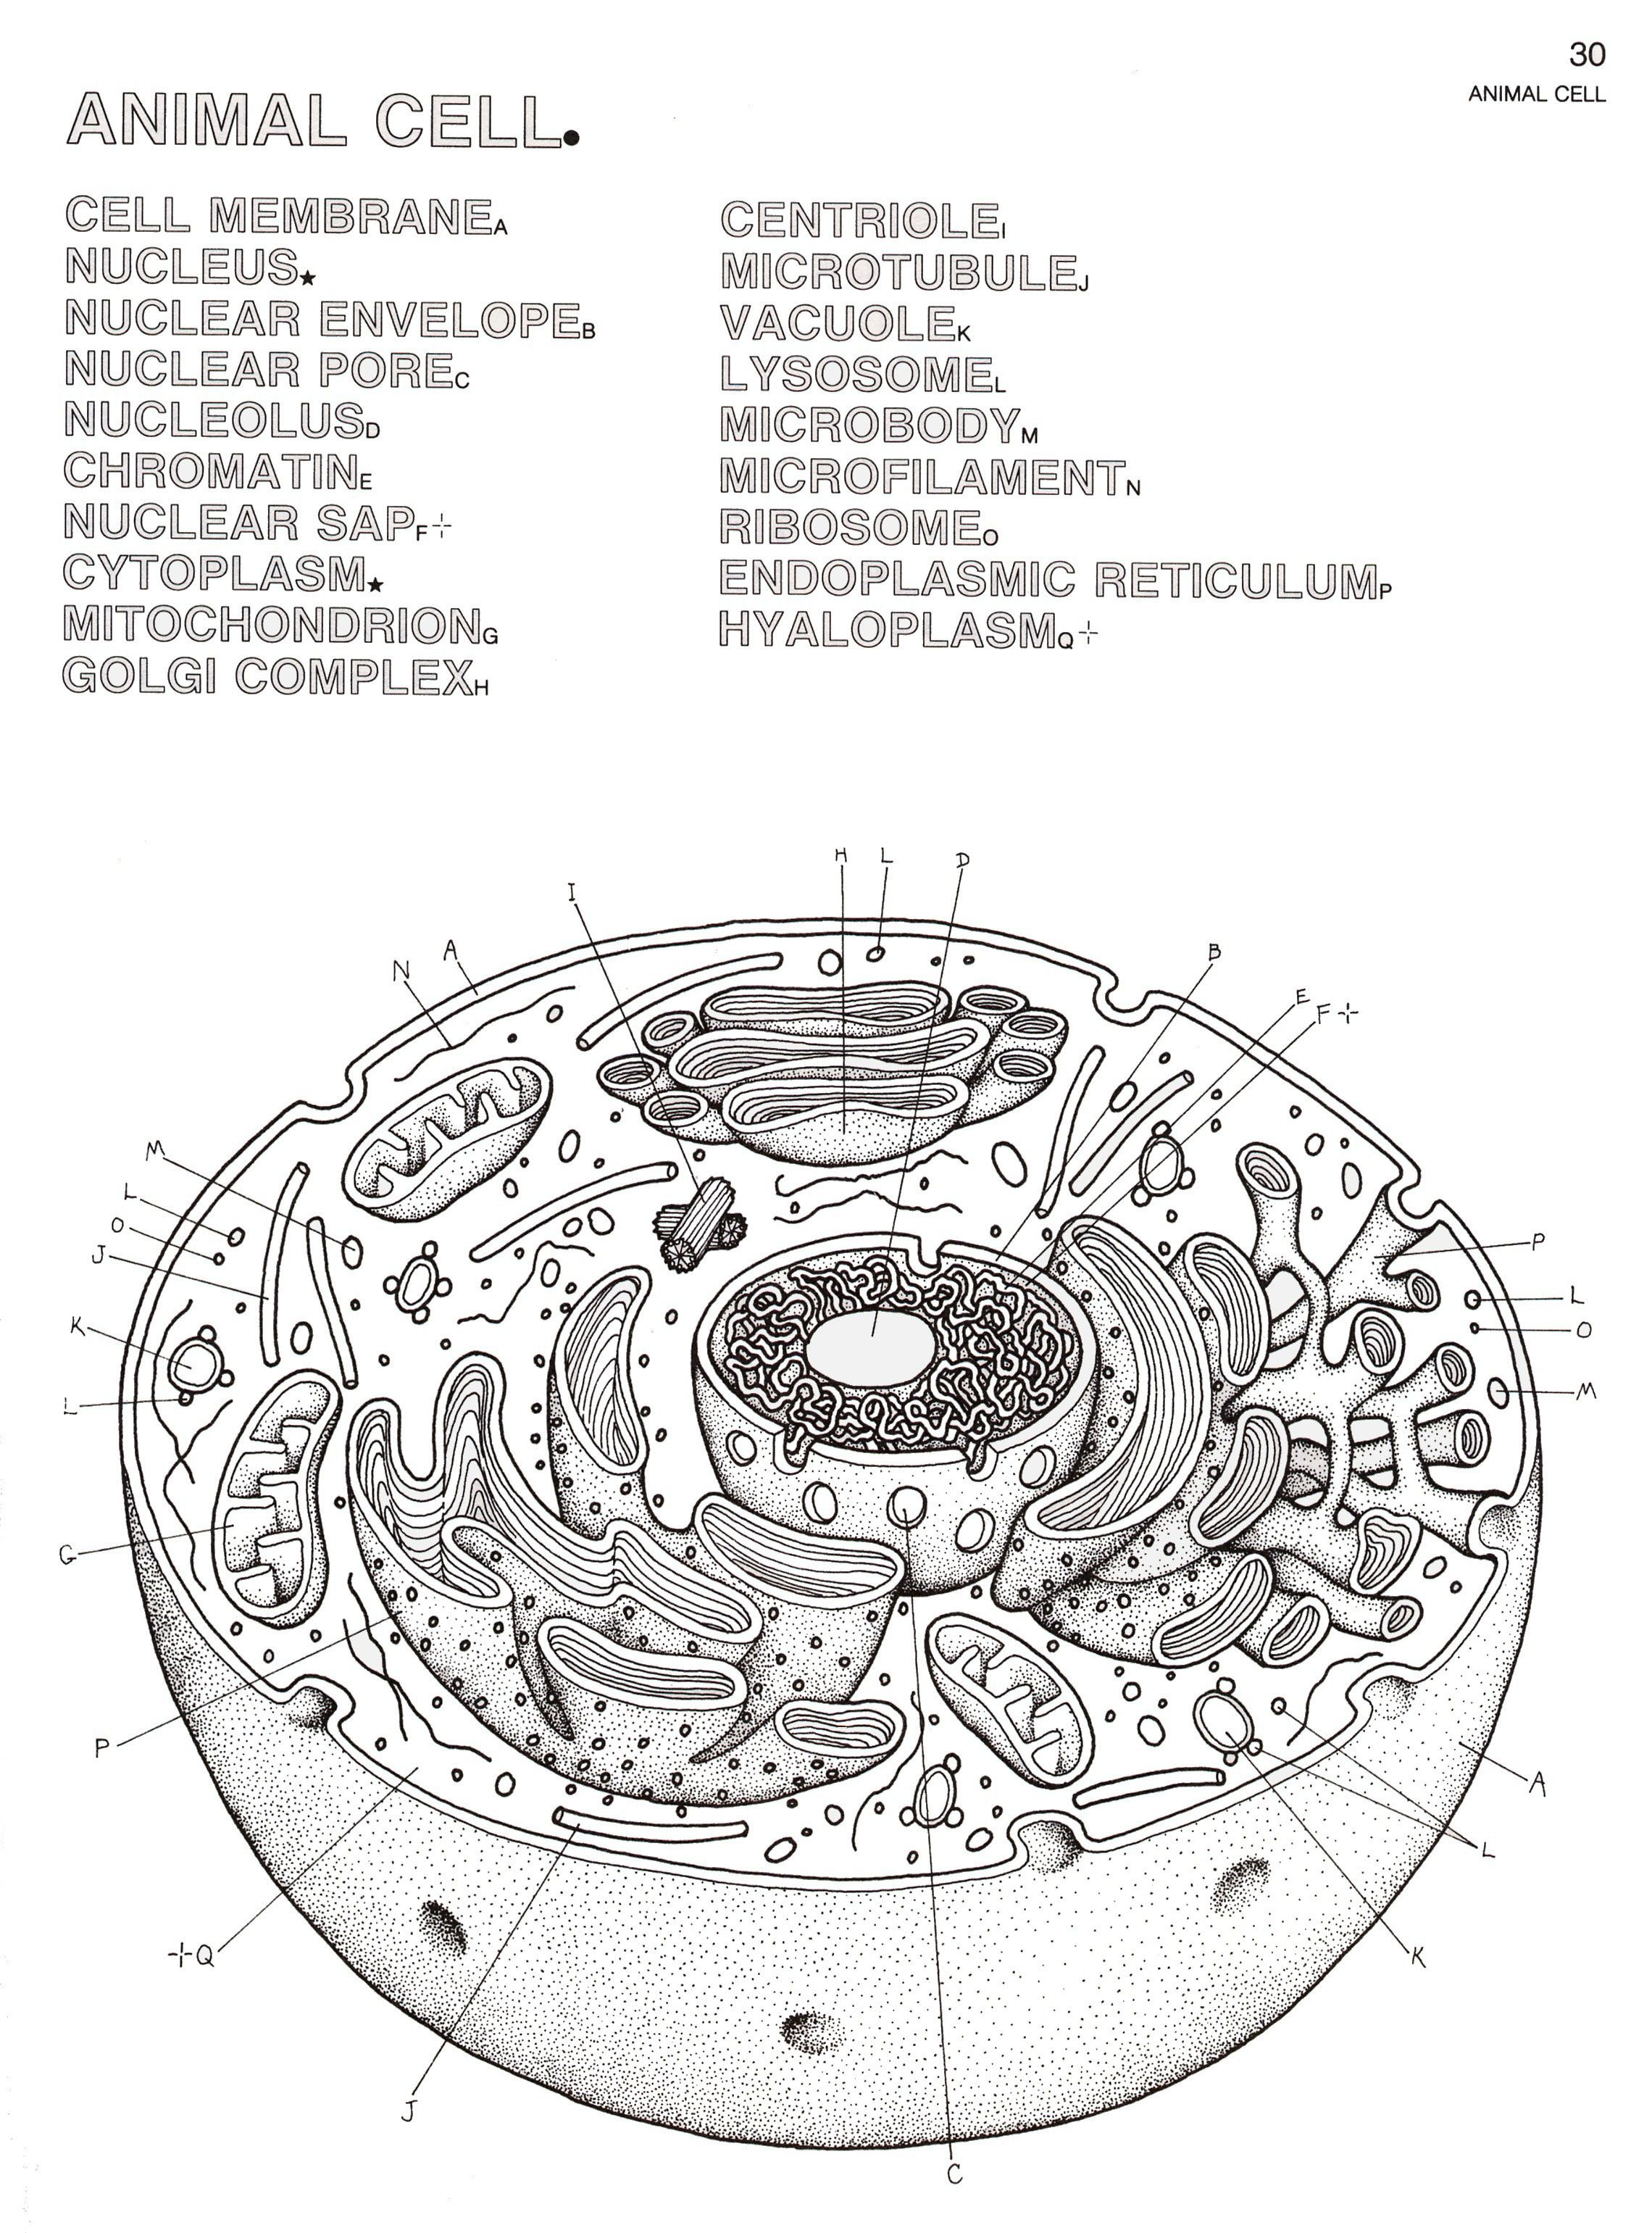 Askabiologist asu edu activities coloring animal cell through the thousand pictures on the web regarding